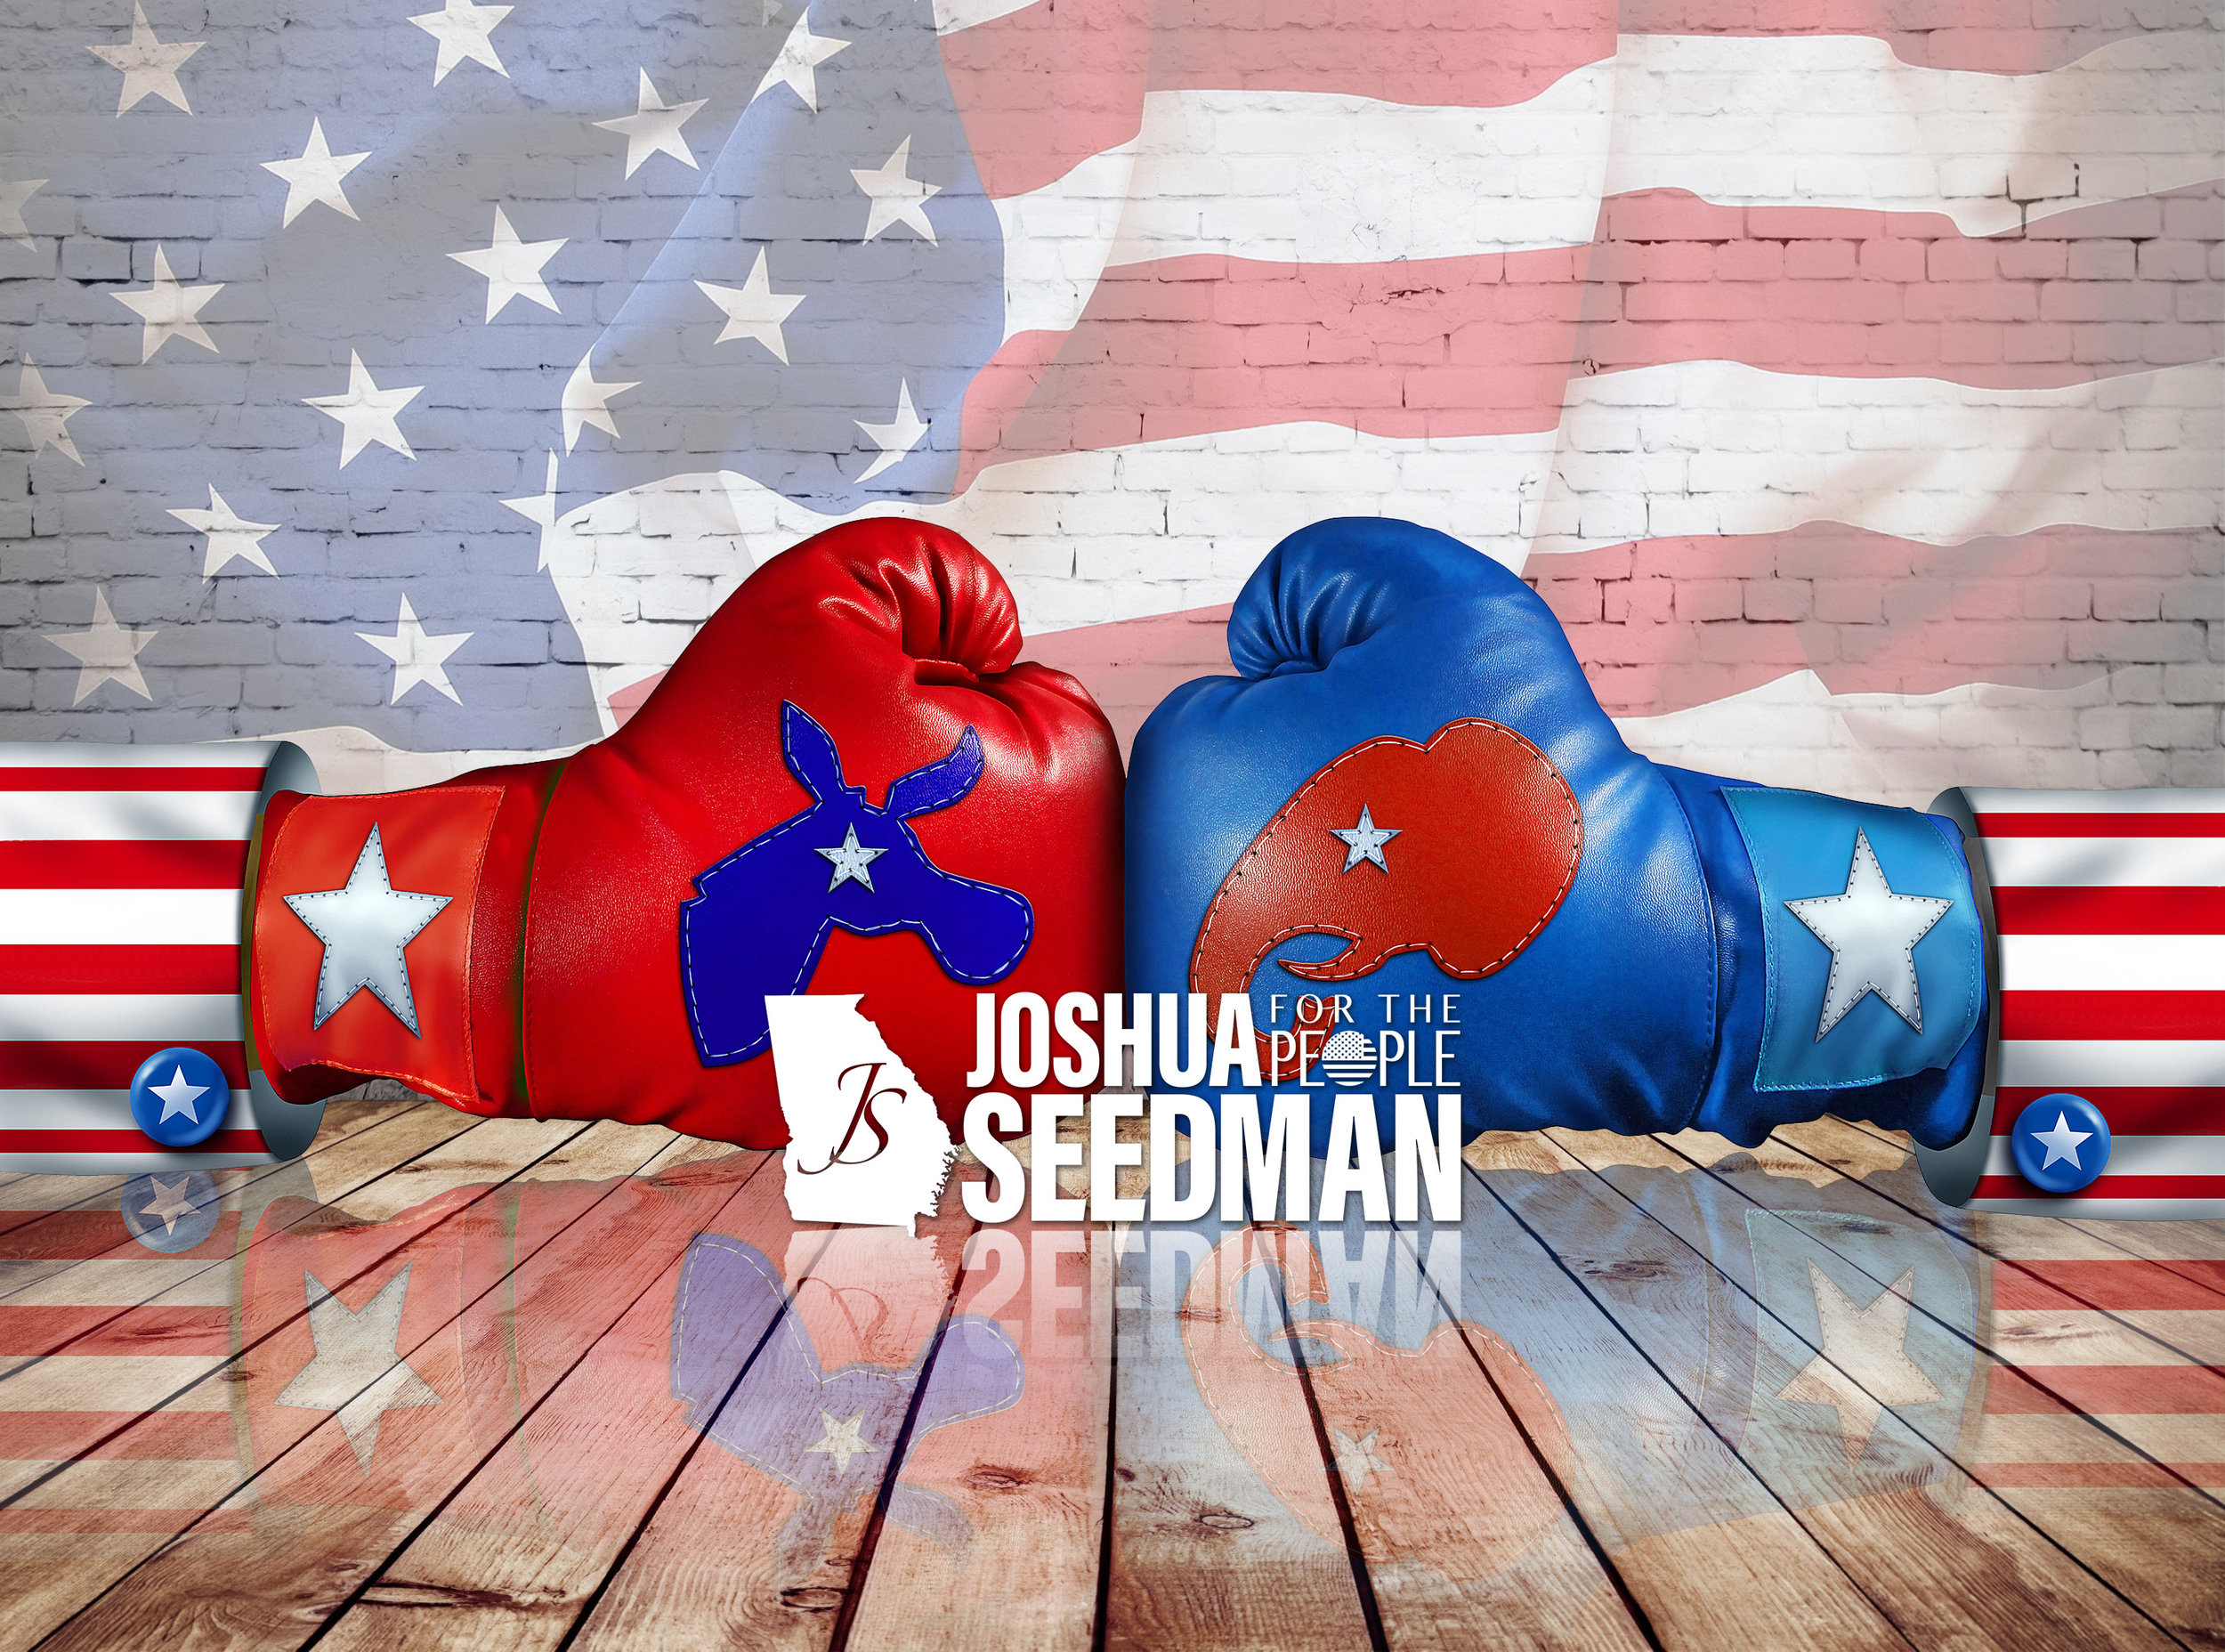 Joshua Seedman | For the People   Official Website